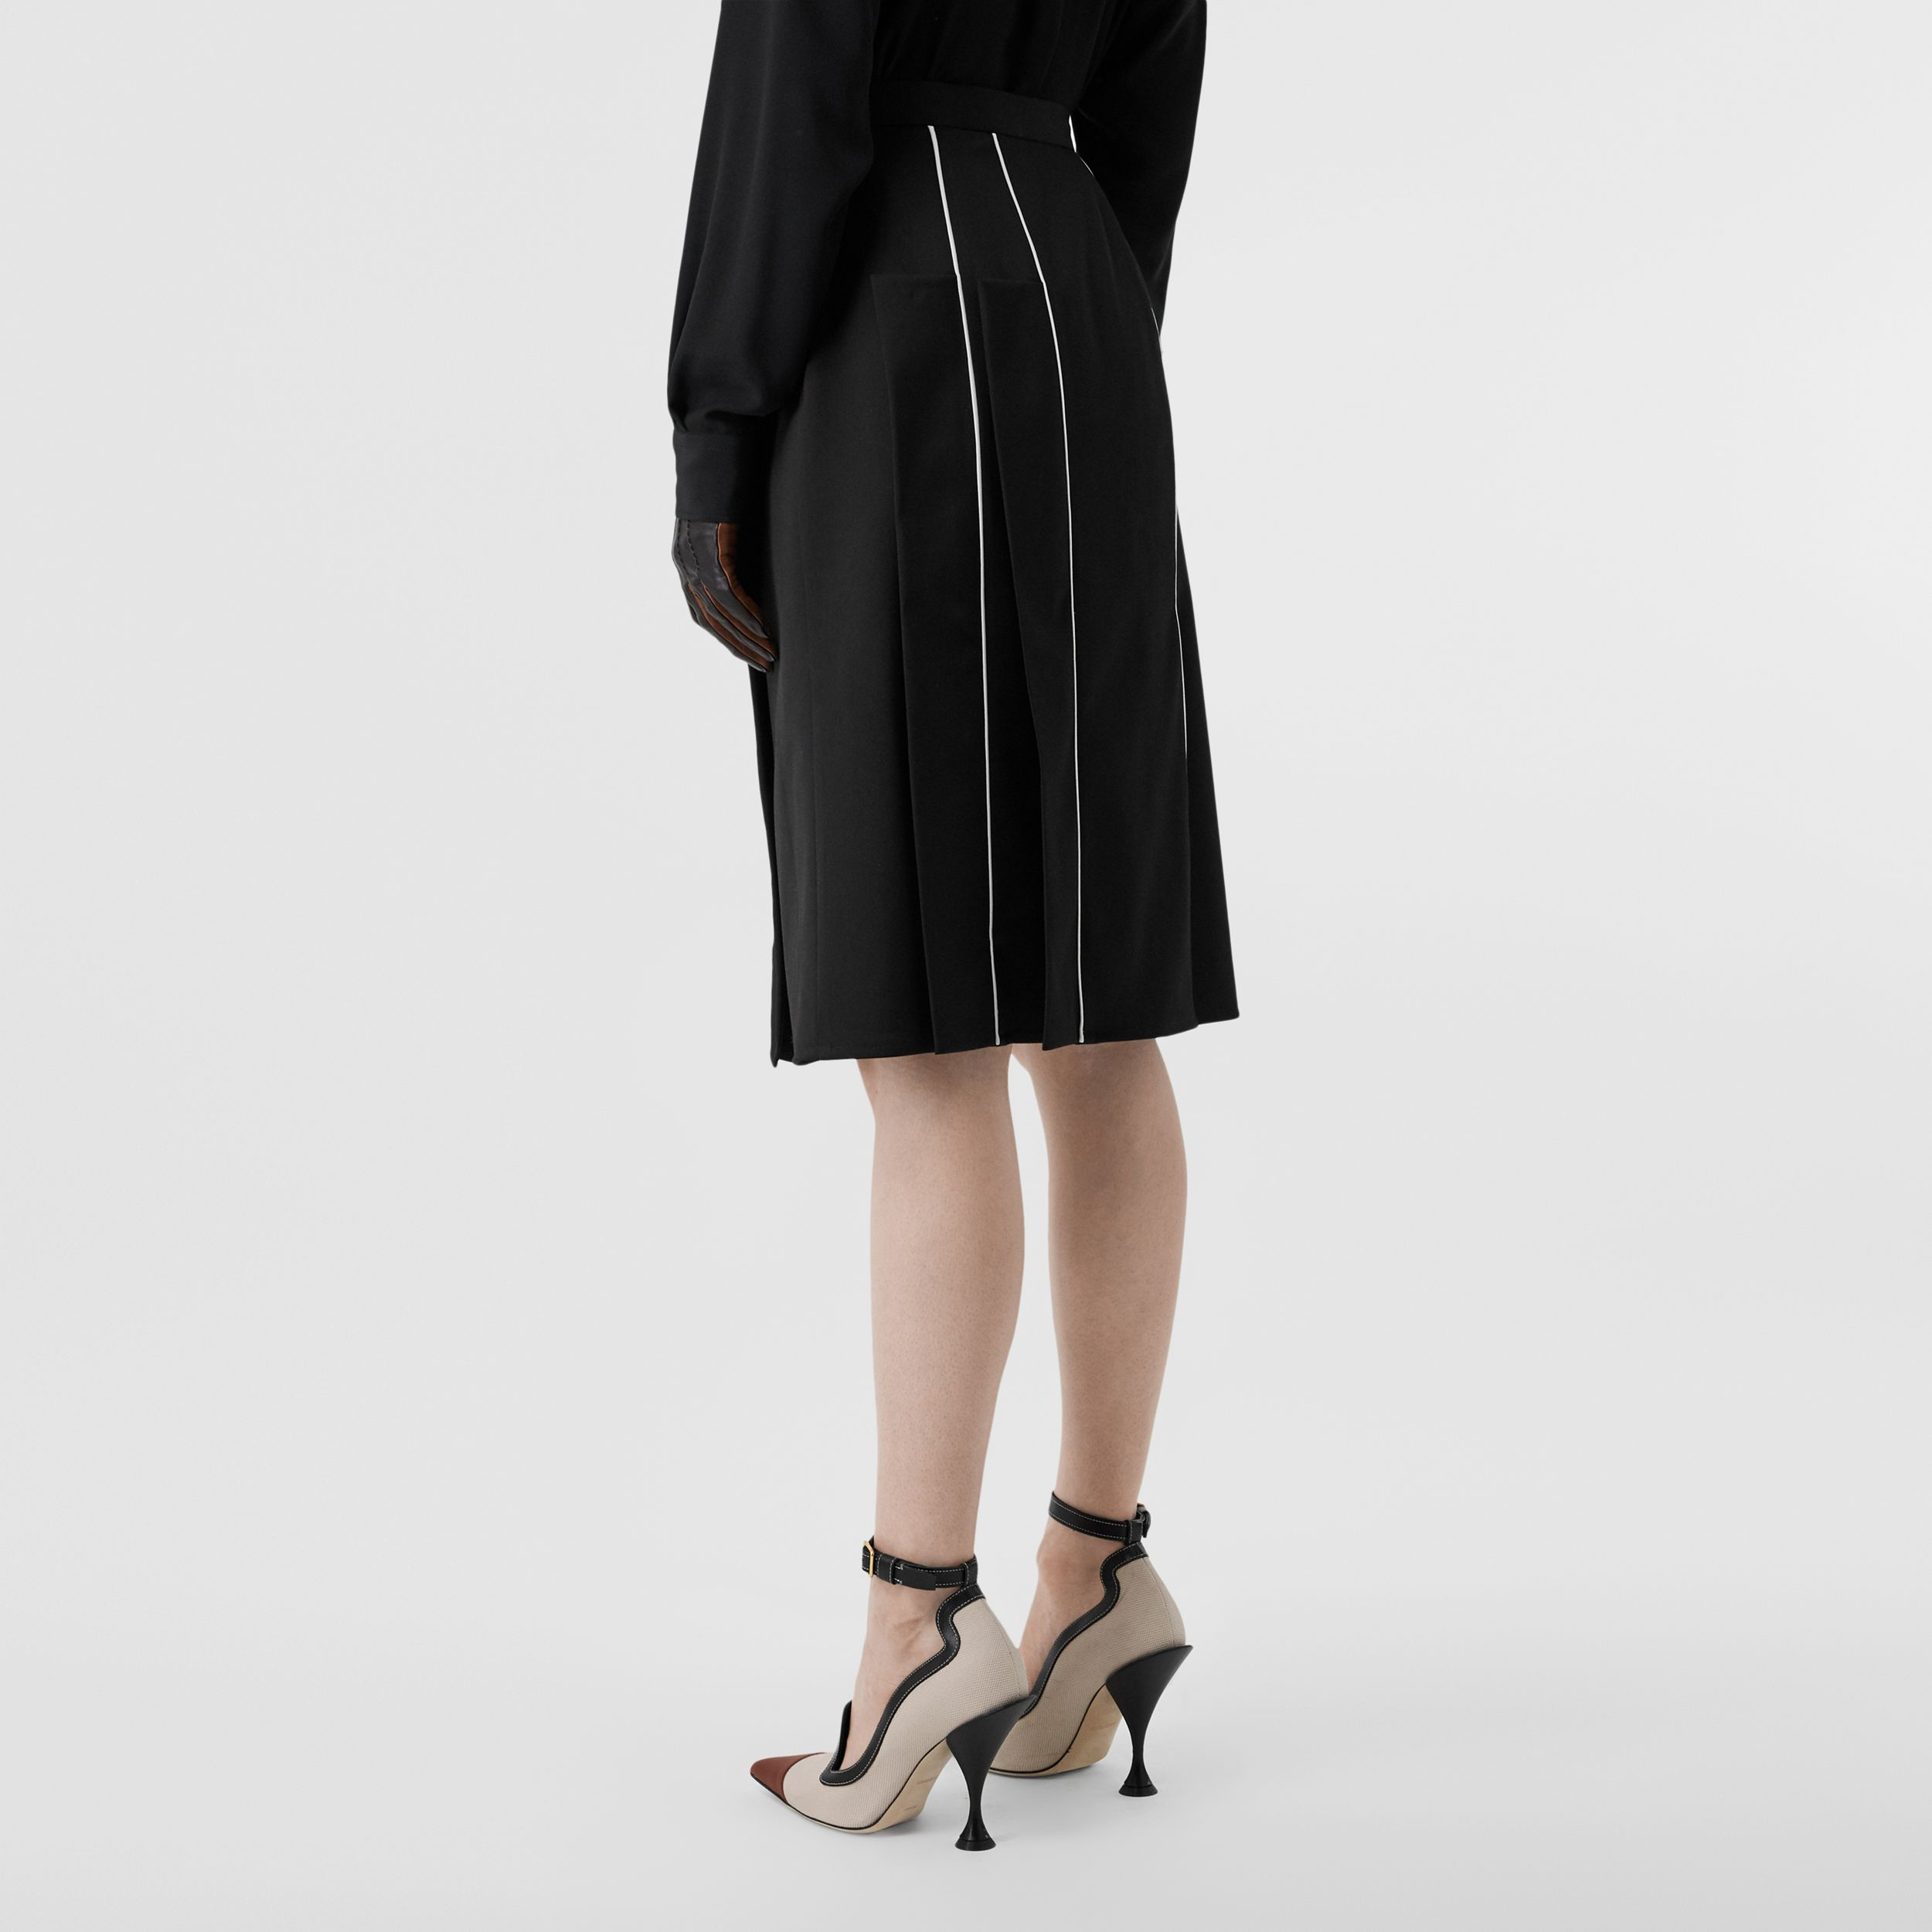 Piping Detail Stretch Wool Crepe Skirt in Black - Women | Burberry - 3